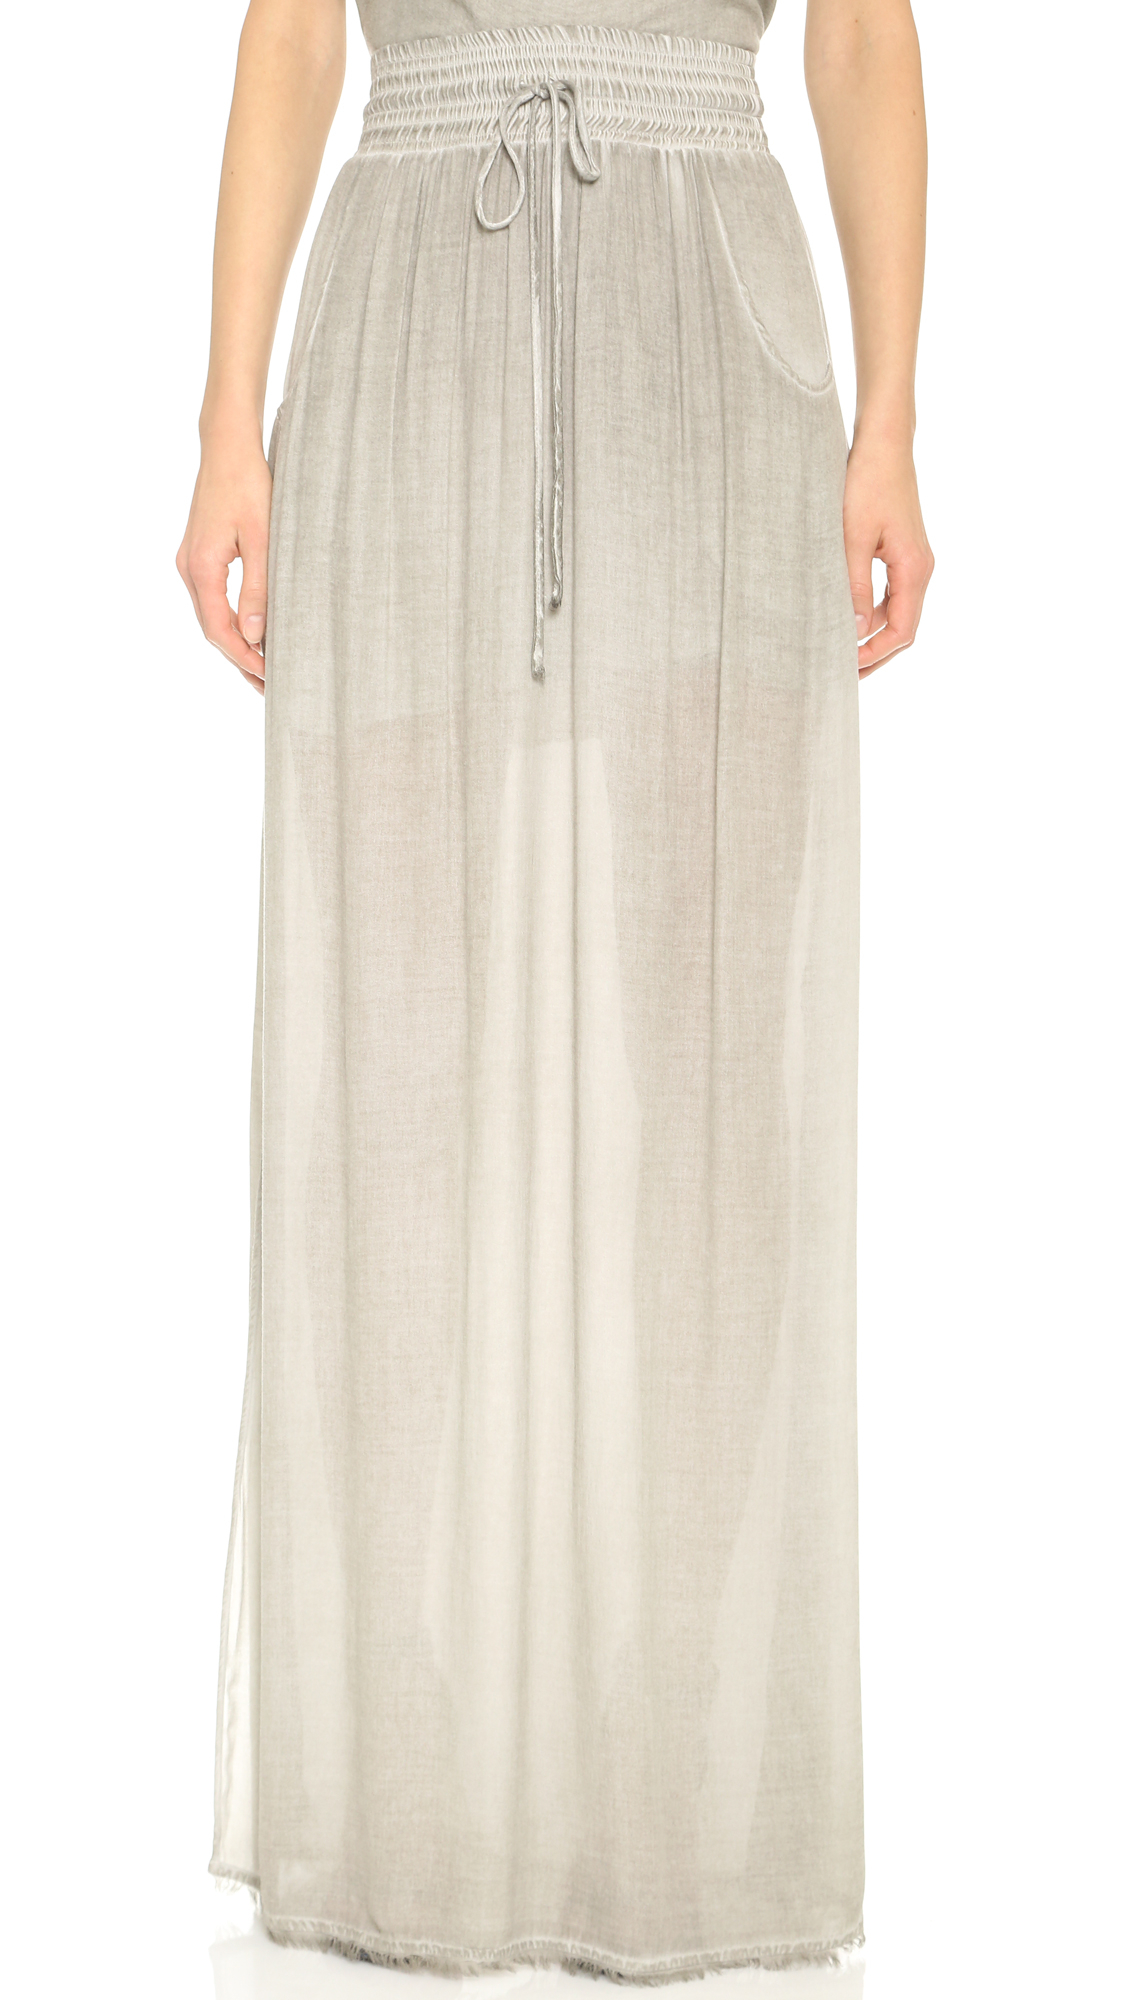 ronny kobo dom maxi skirt grey in gray